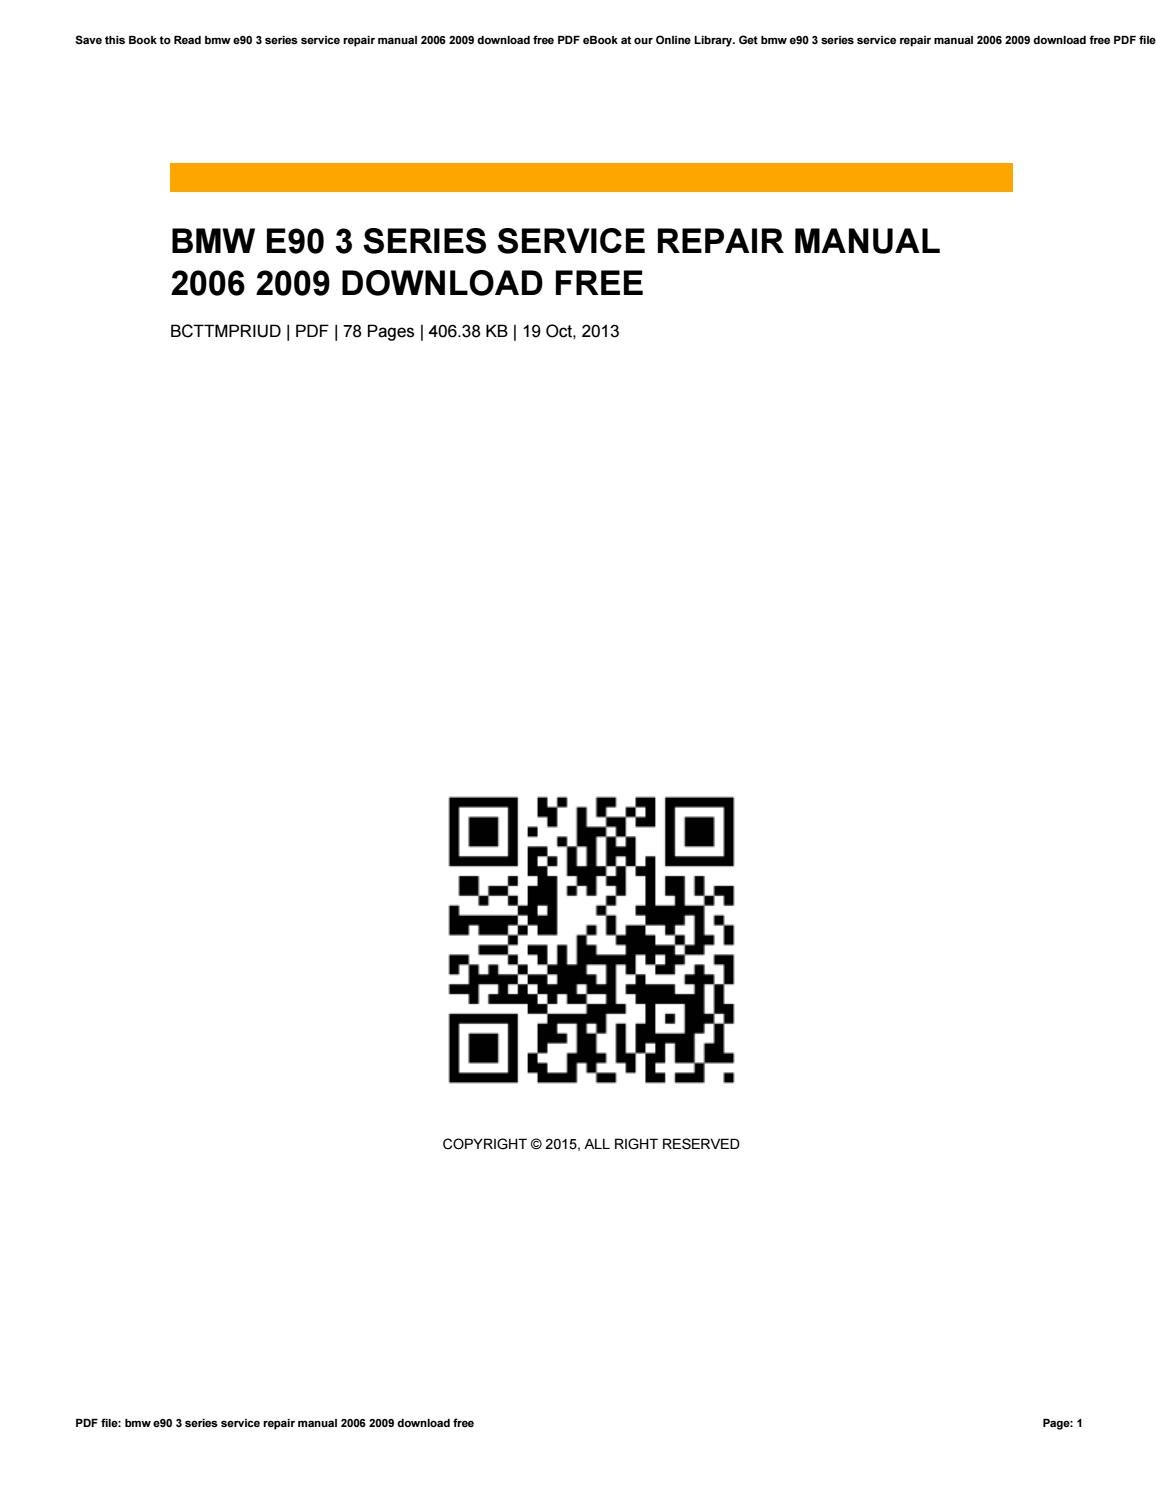 Bmw e90 3 series service repair manual 2006 2009 download free by endrix822  - issuu